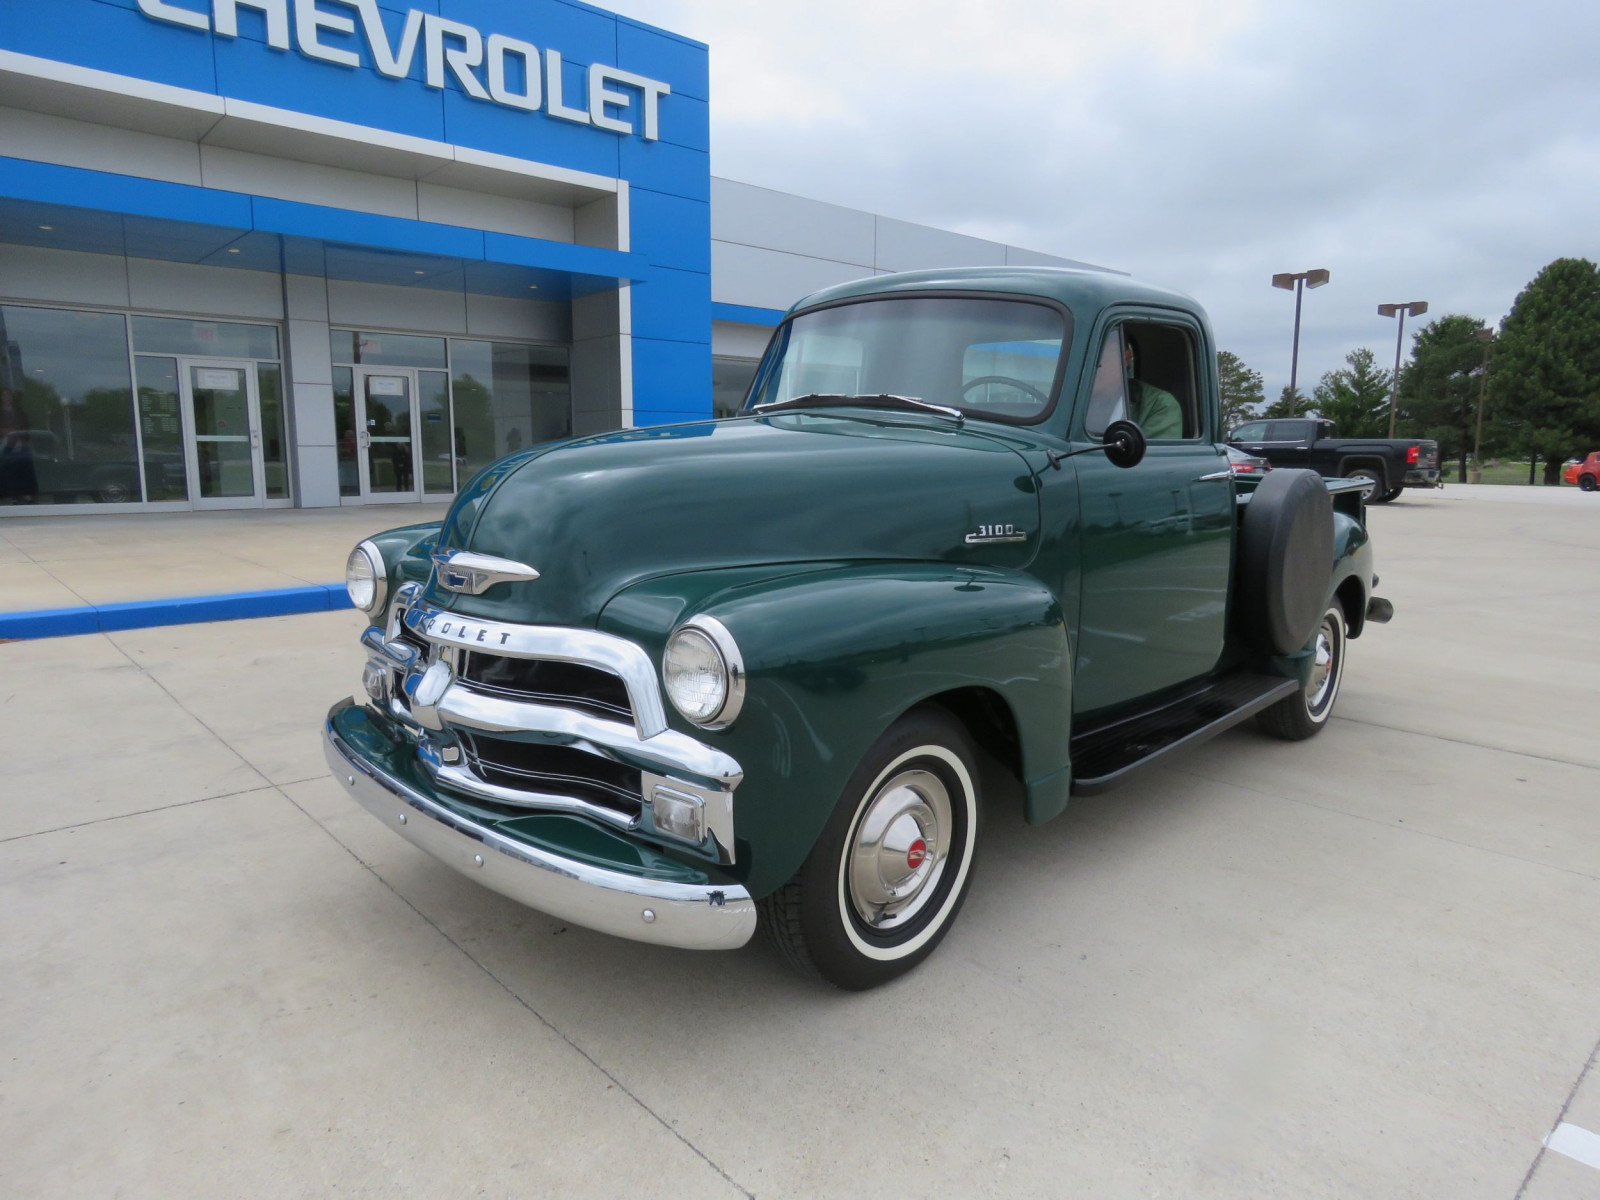 1954 Chevrolet 3100 Series Pickup - Image 2